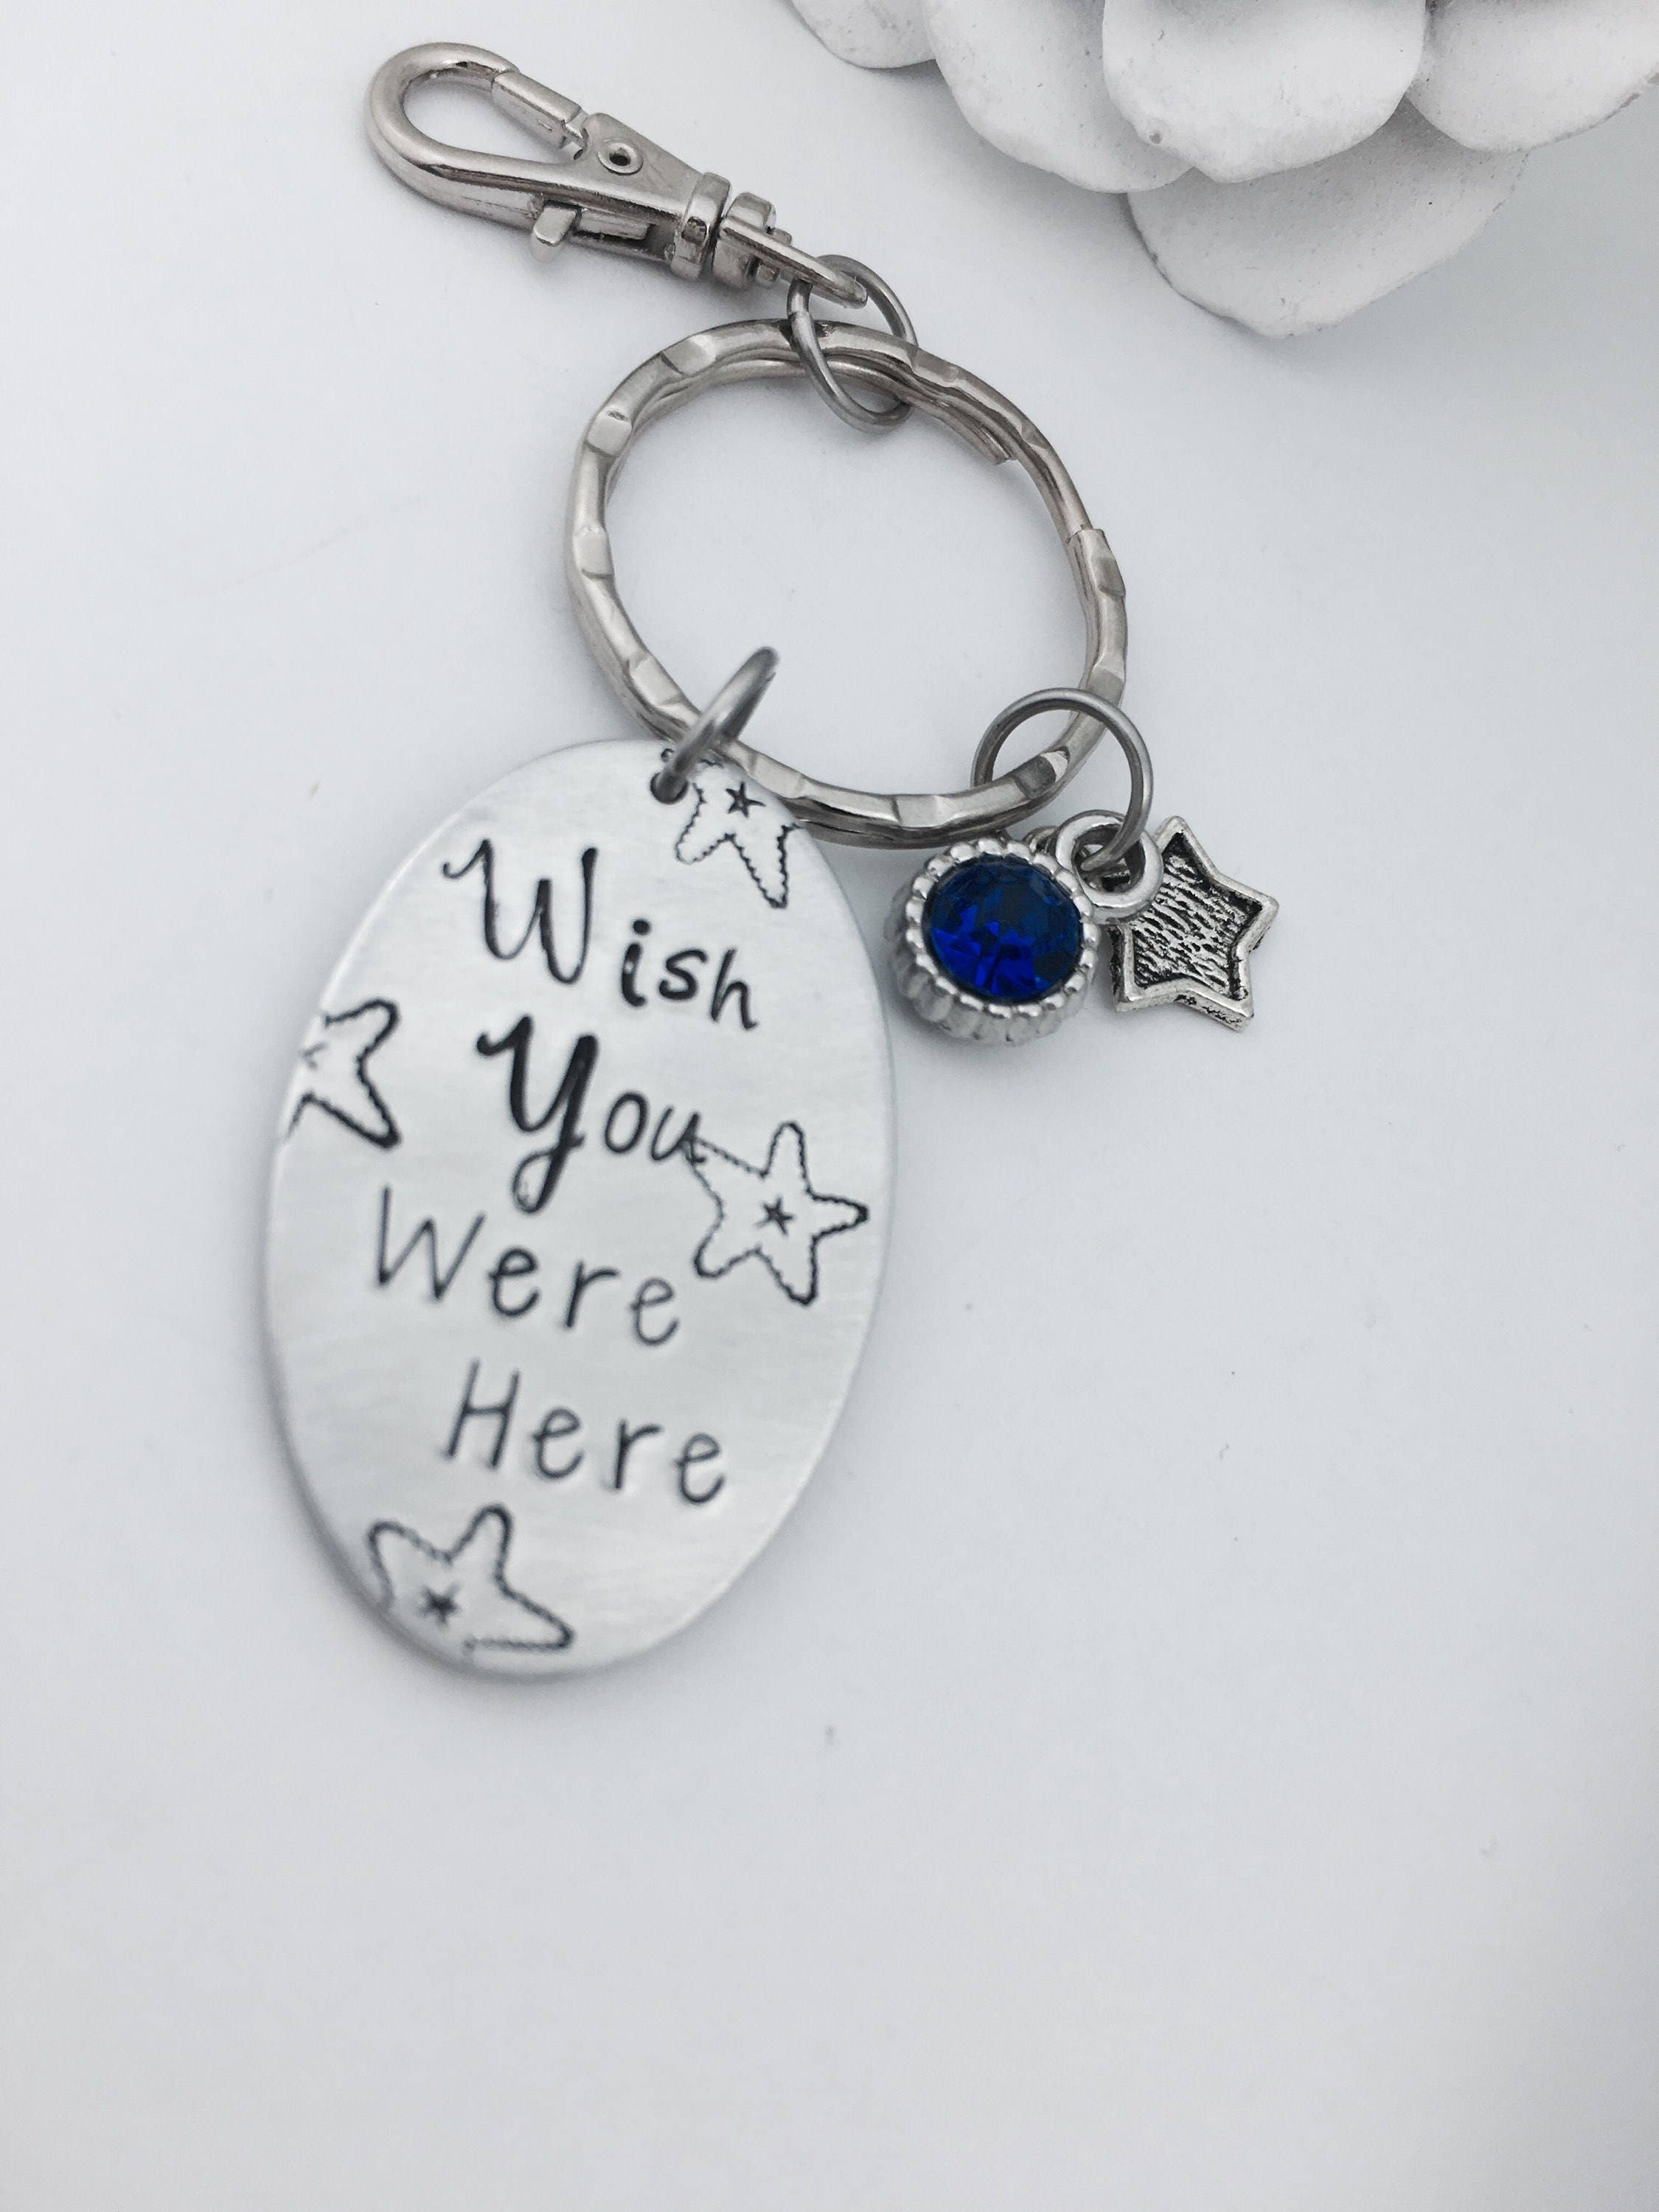 Christmas Gifts for Sister, Wish You Were Here, Keyring, Long ...